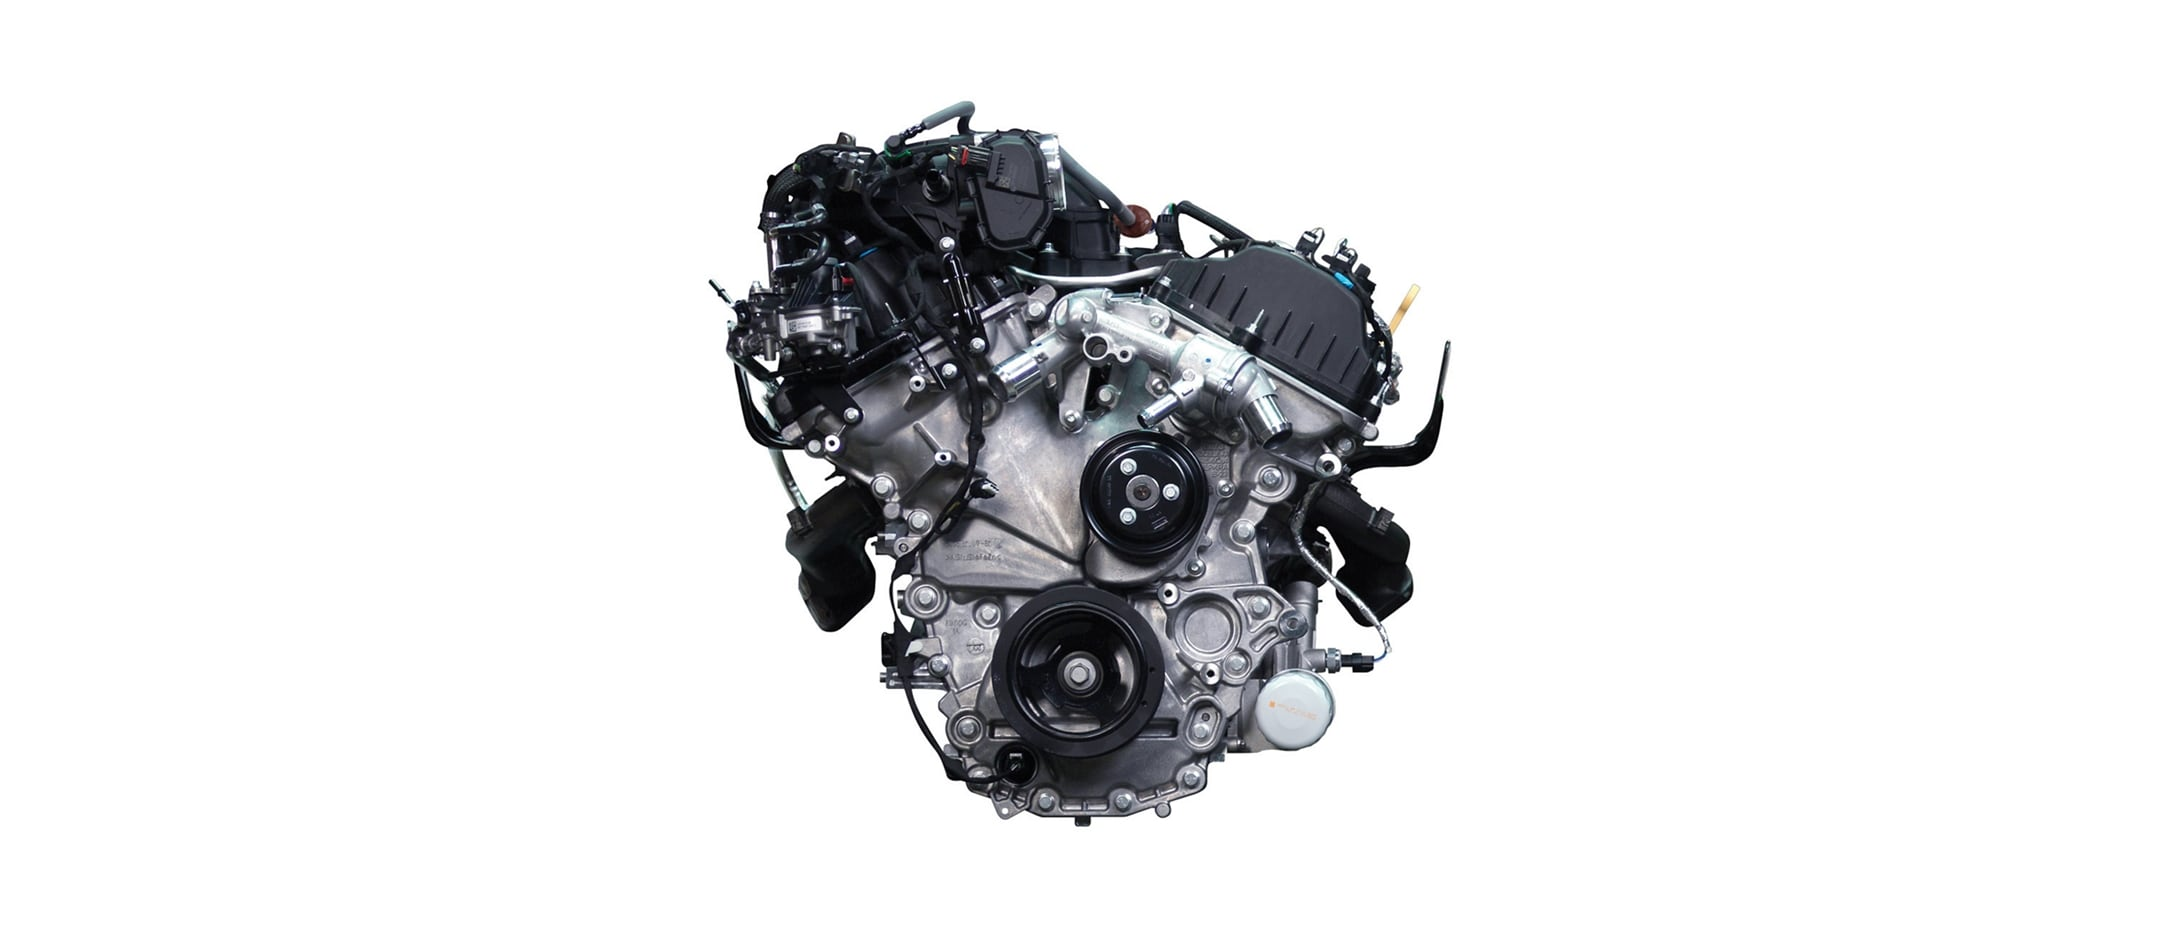 3.3L TI-VCT V6 Ford F150 Engine